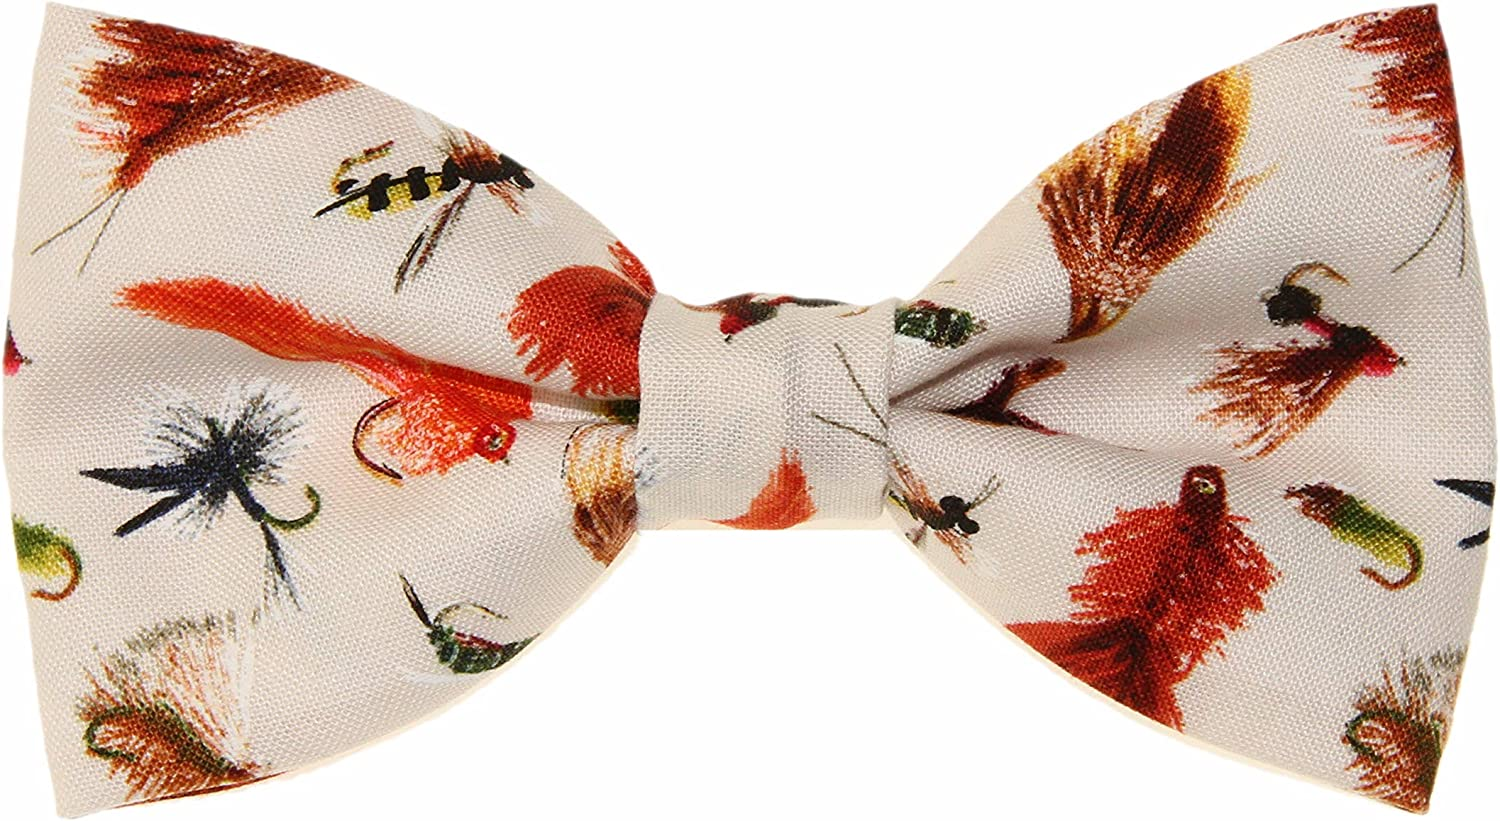 Mens Cream With Fishing Lures Baits Clip On Cotton Bow Tie Bowtie by amy2004marie